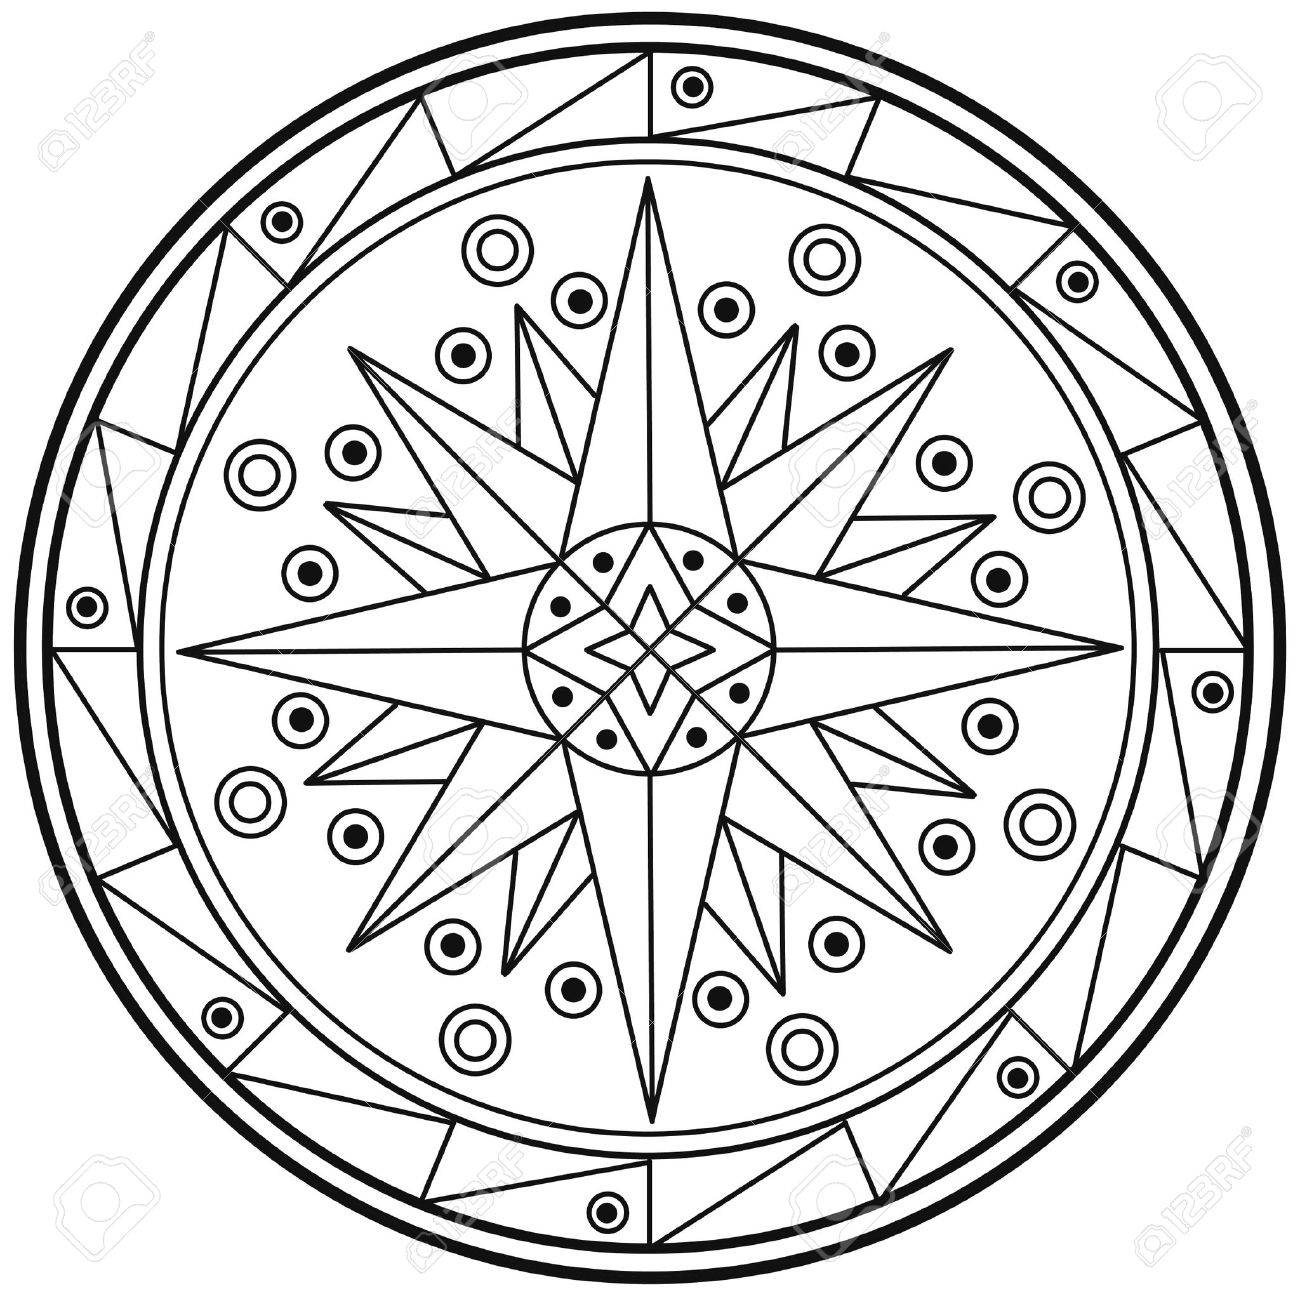 Geometric mandala sacred circle Black and White Coloring Outline Stock Photo - 16979848